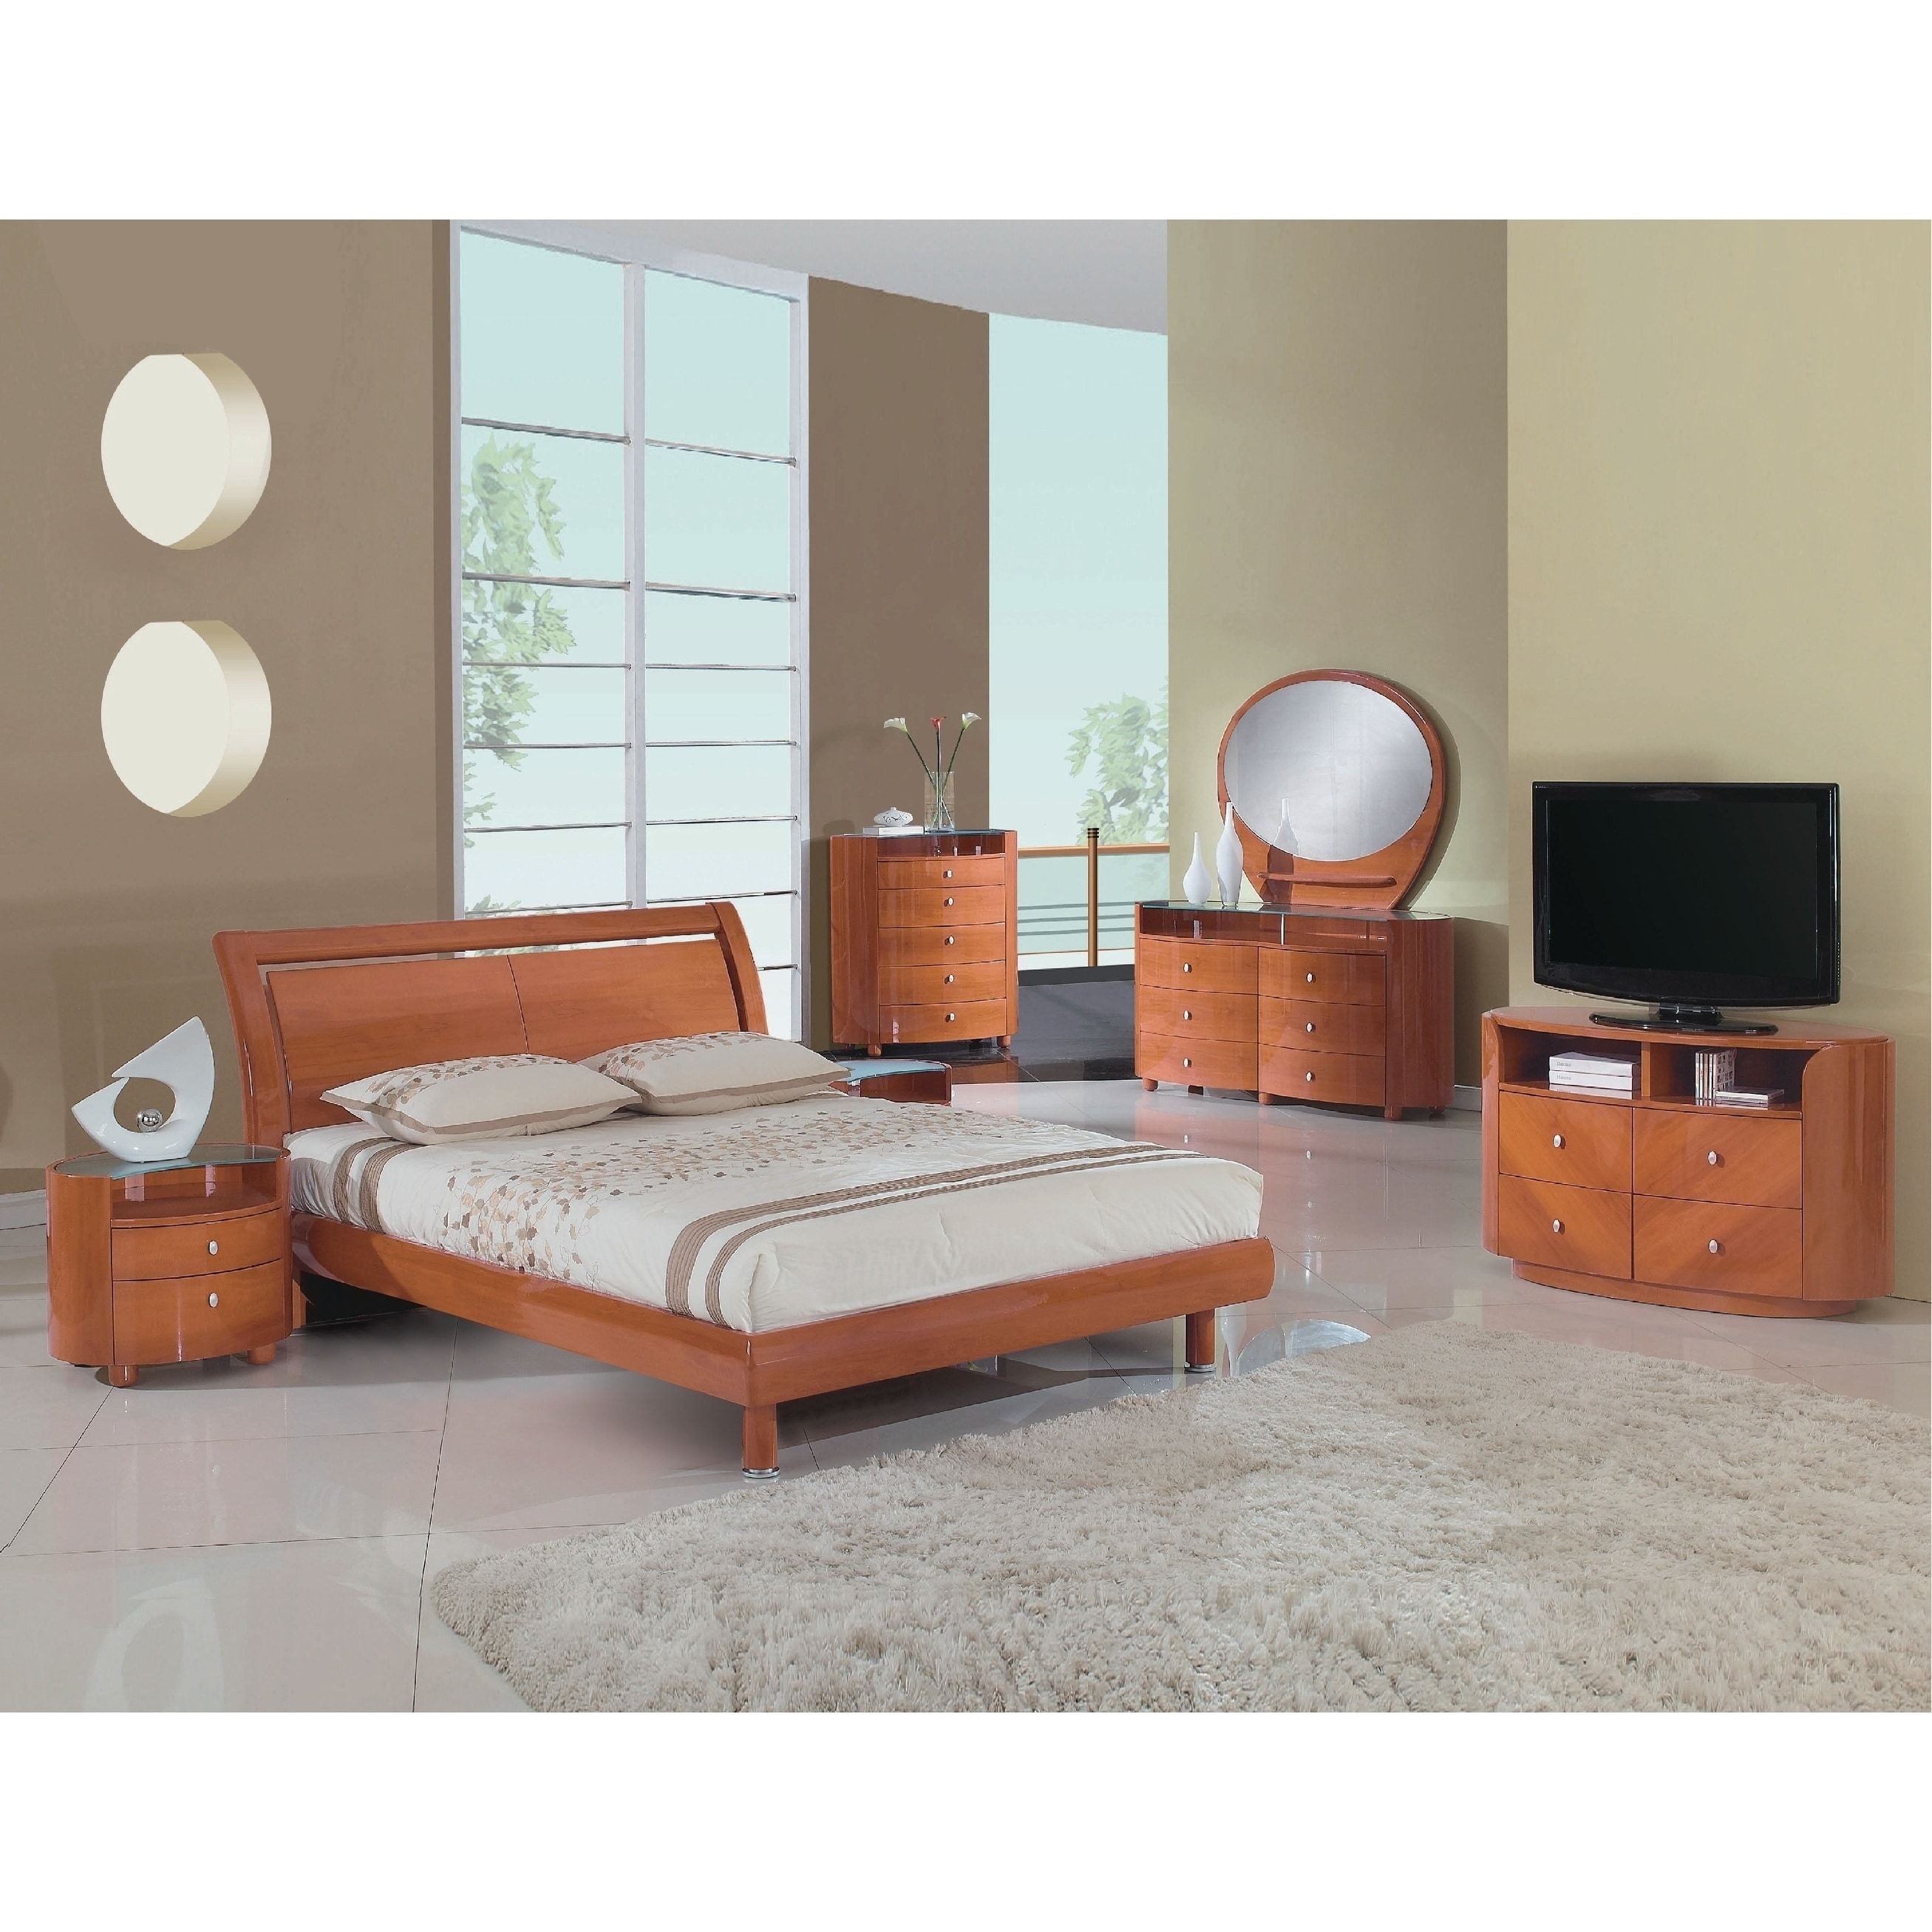 Cheap King Bedroom Set Fresh Line Shopping Bedding Furniture Electronics Jewelry